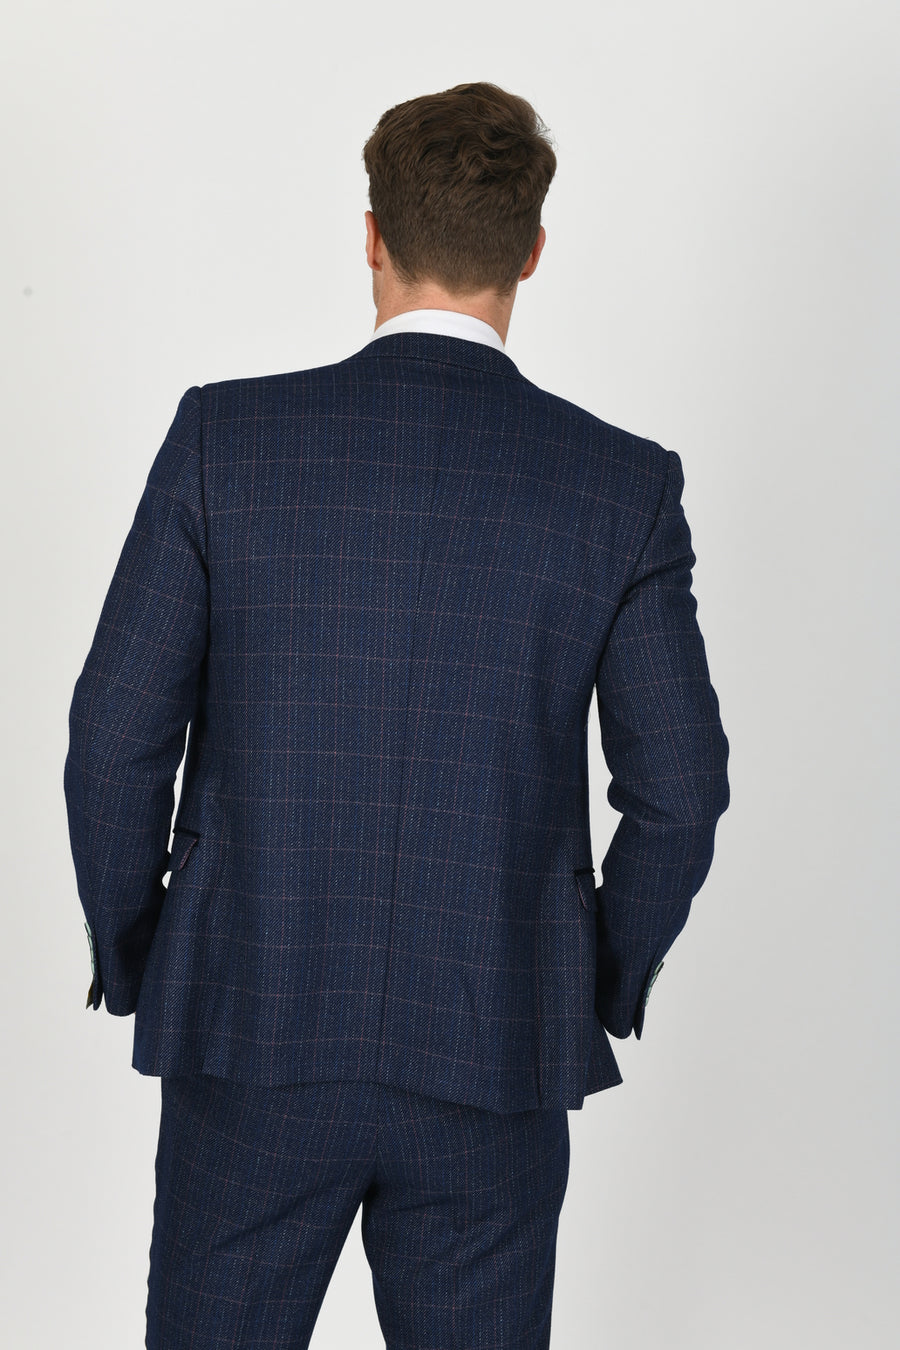 Harry Blue Wedding Jacket - Wedding Suit Direct